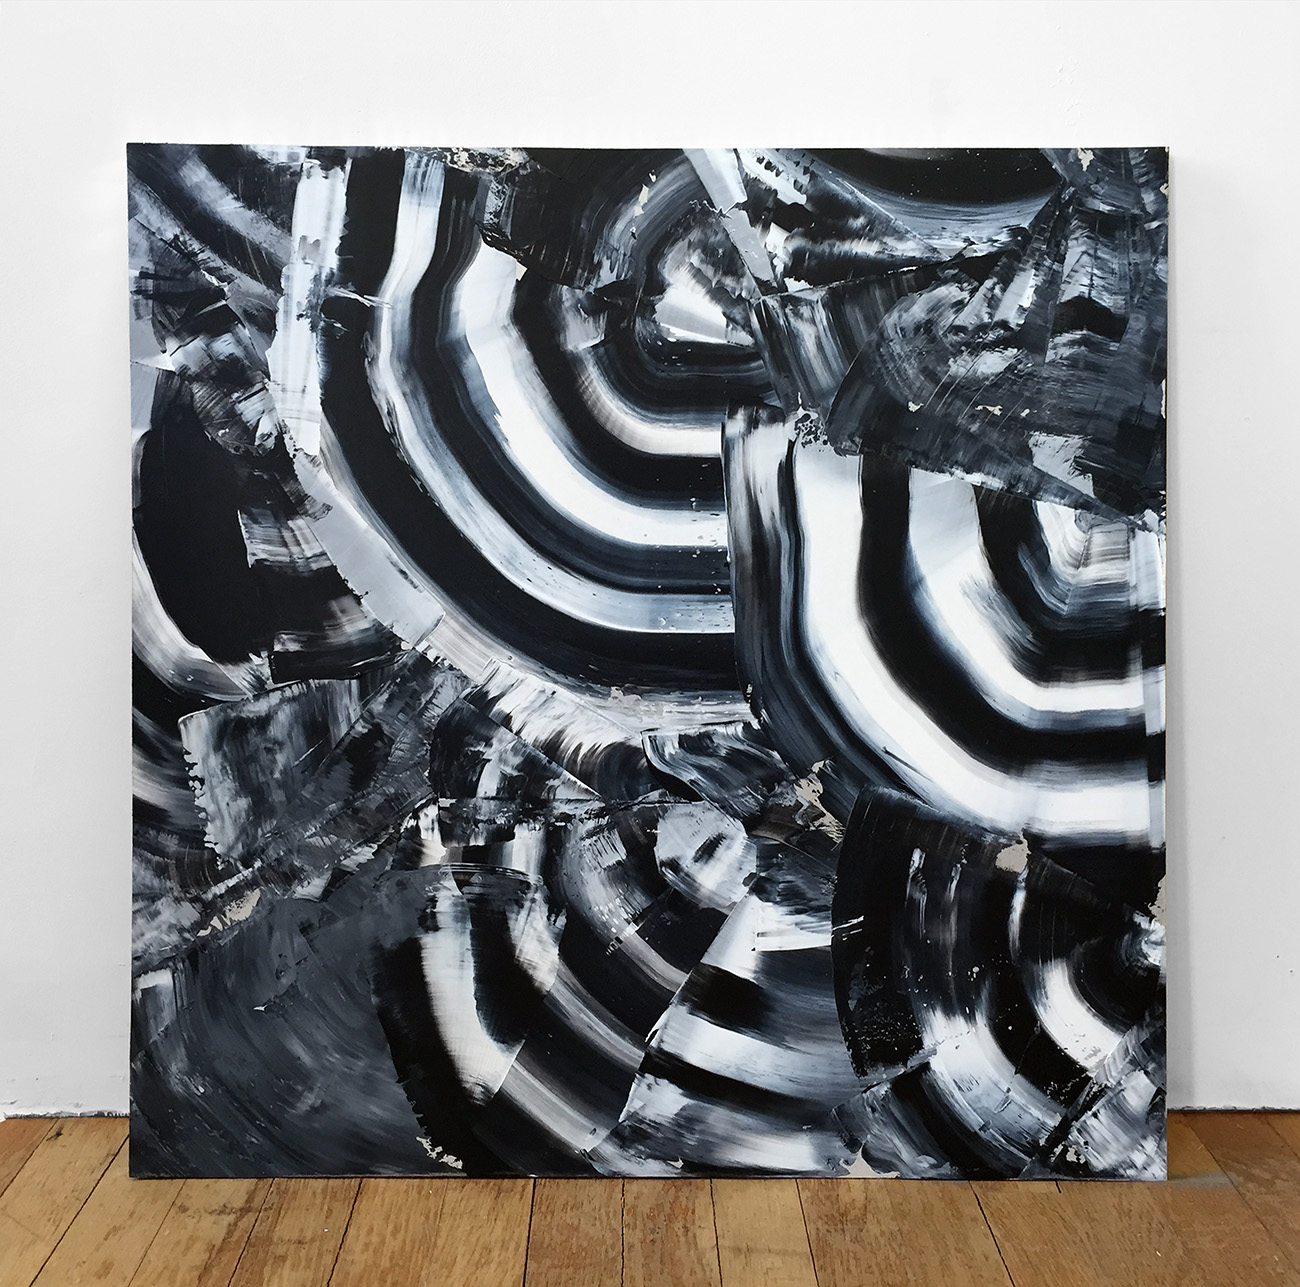 Liminal+3-11,+24×24in.+Acrylic+on+aluminum+honeycomb+panel.jpg